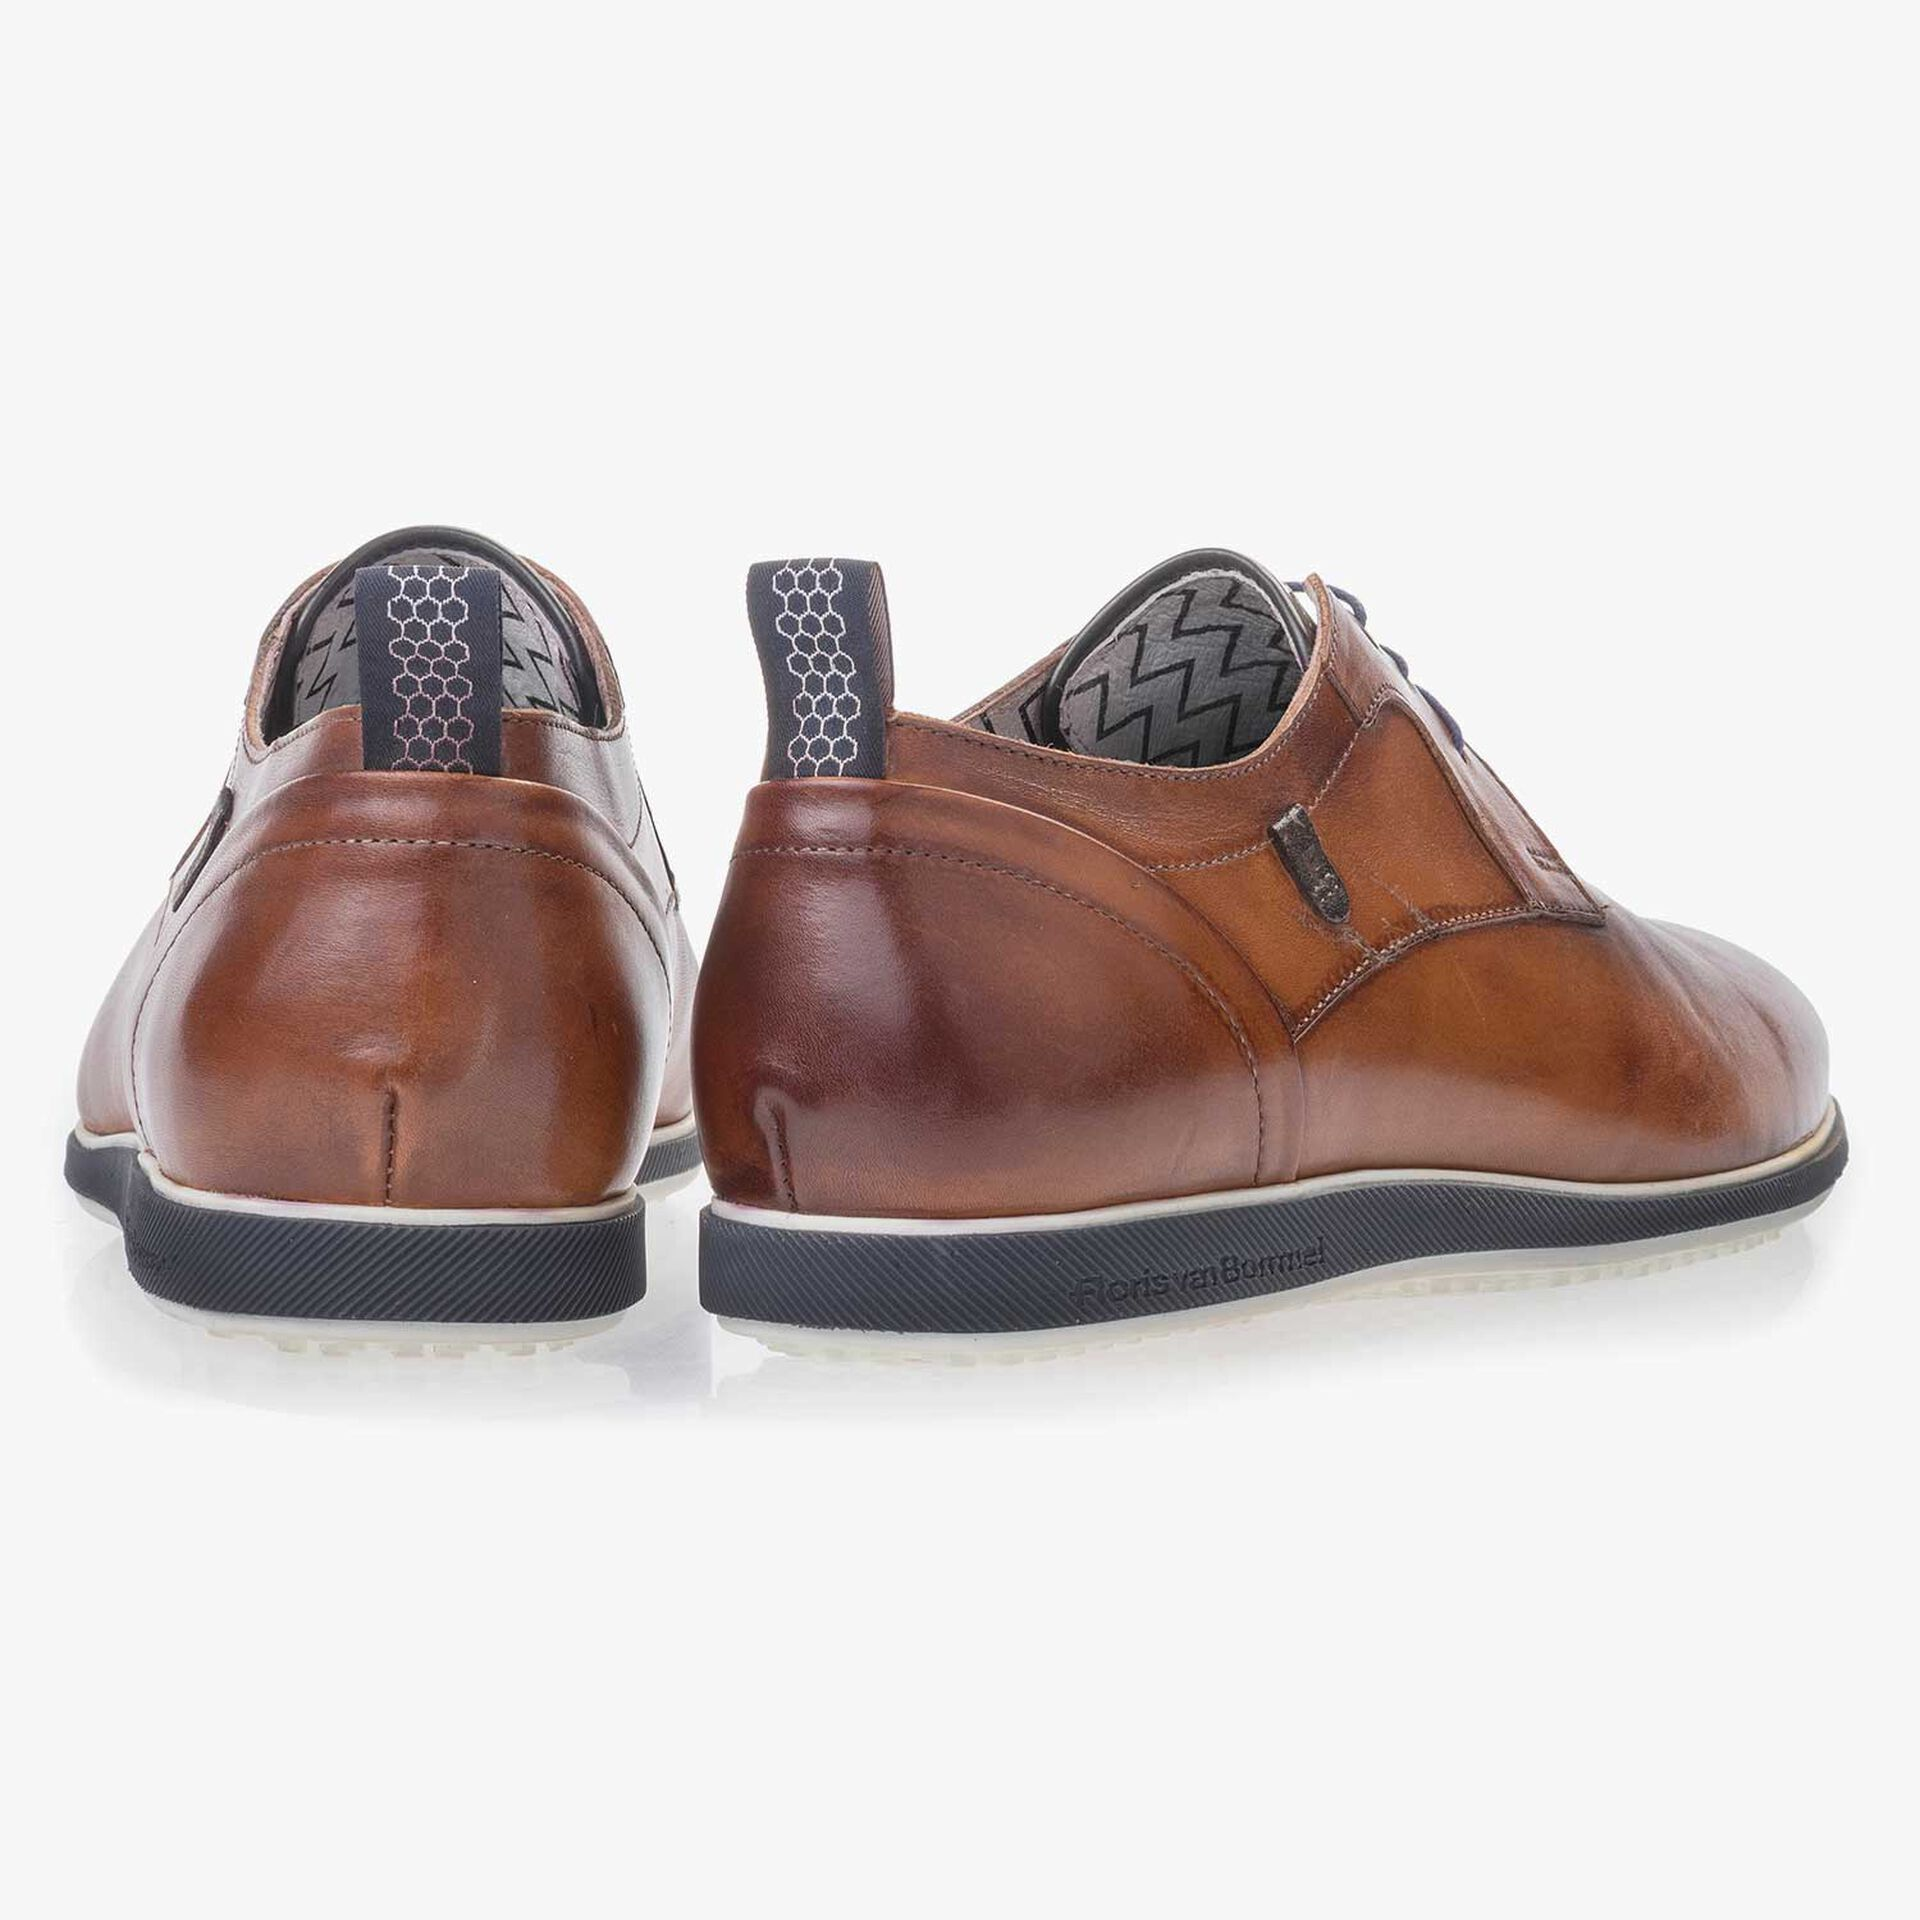 Cognac-colored leather lace shoe